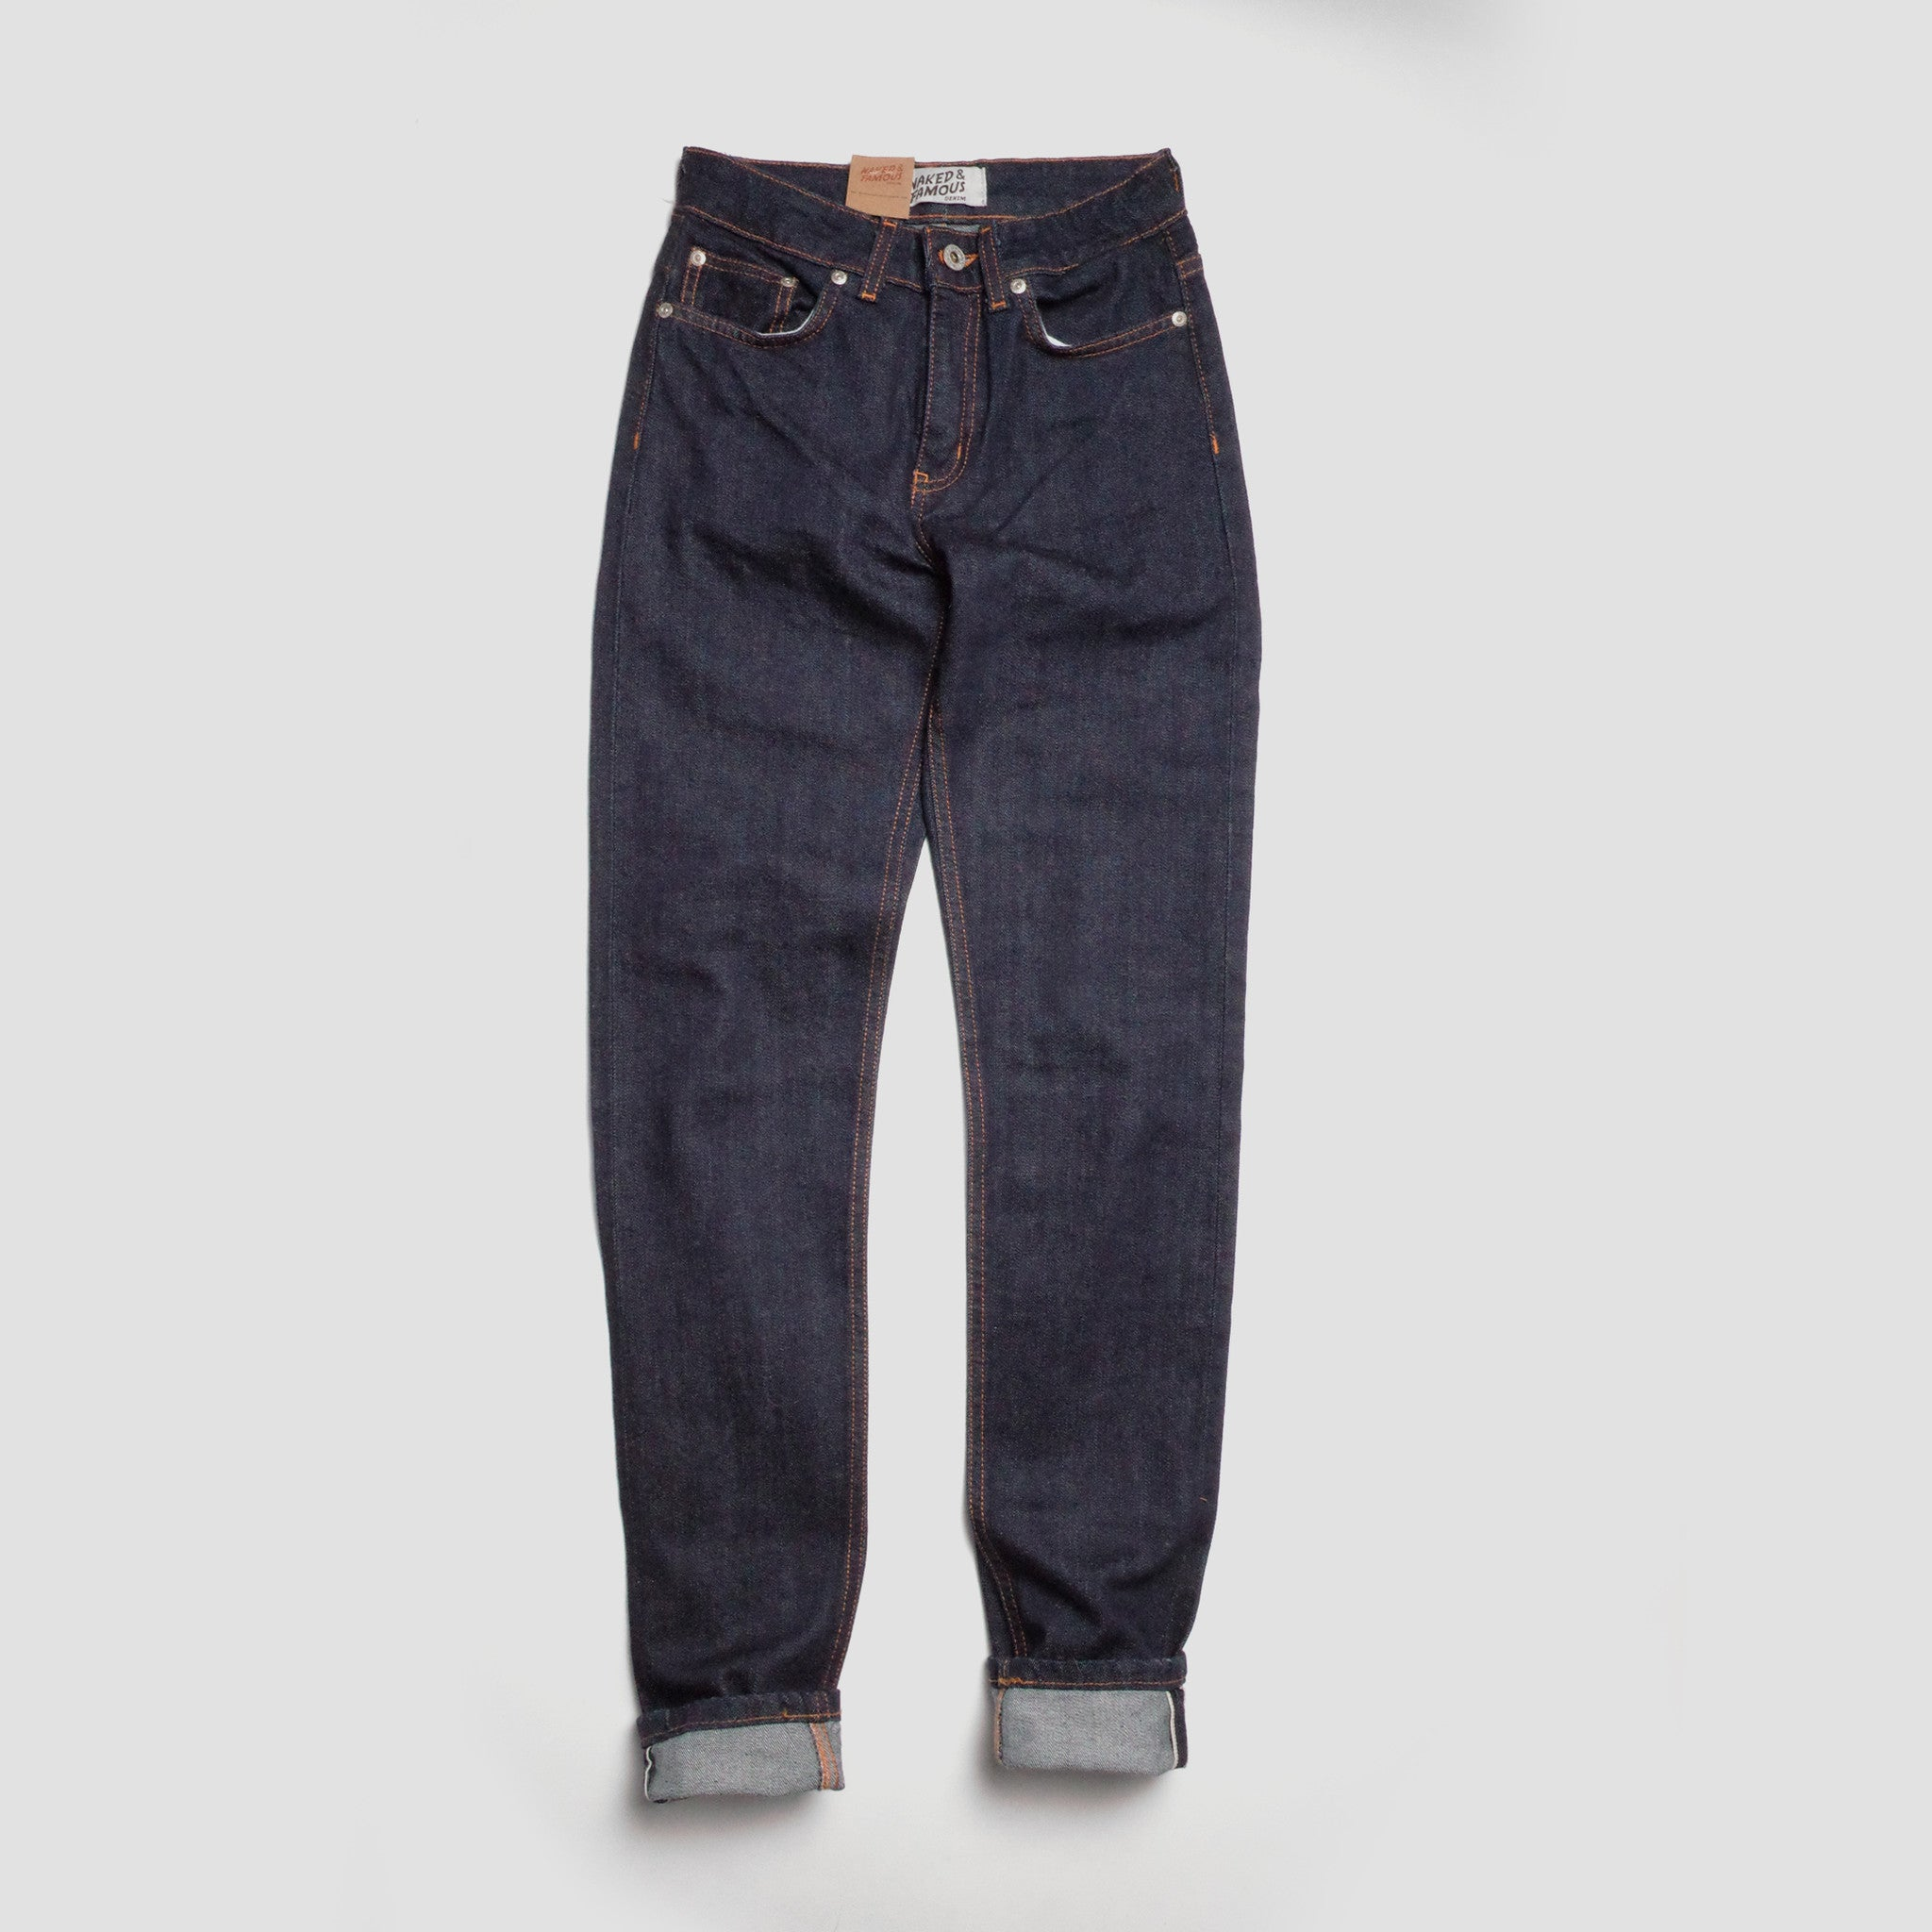 035504 The Boyfriend - 11oz Stretch Selvedge - Womens